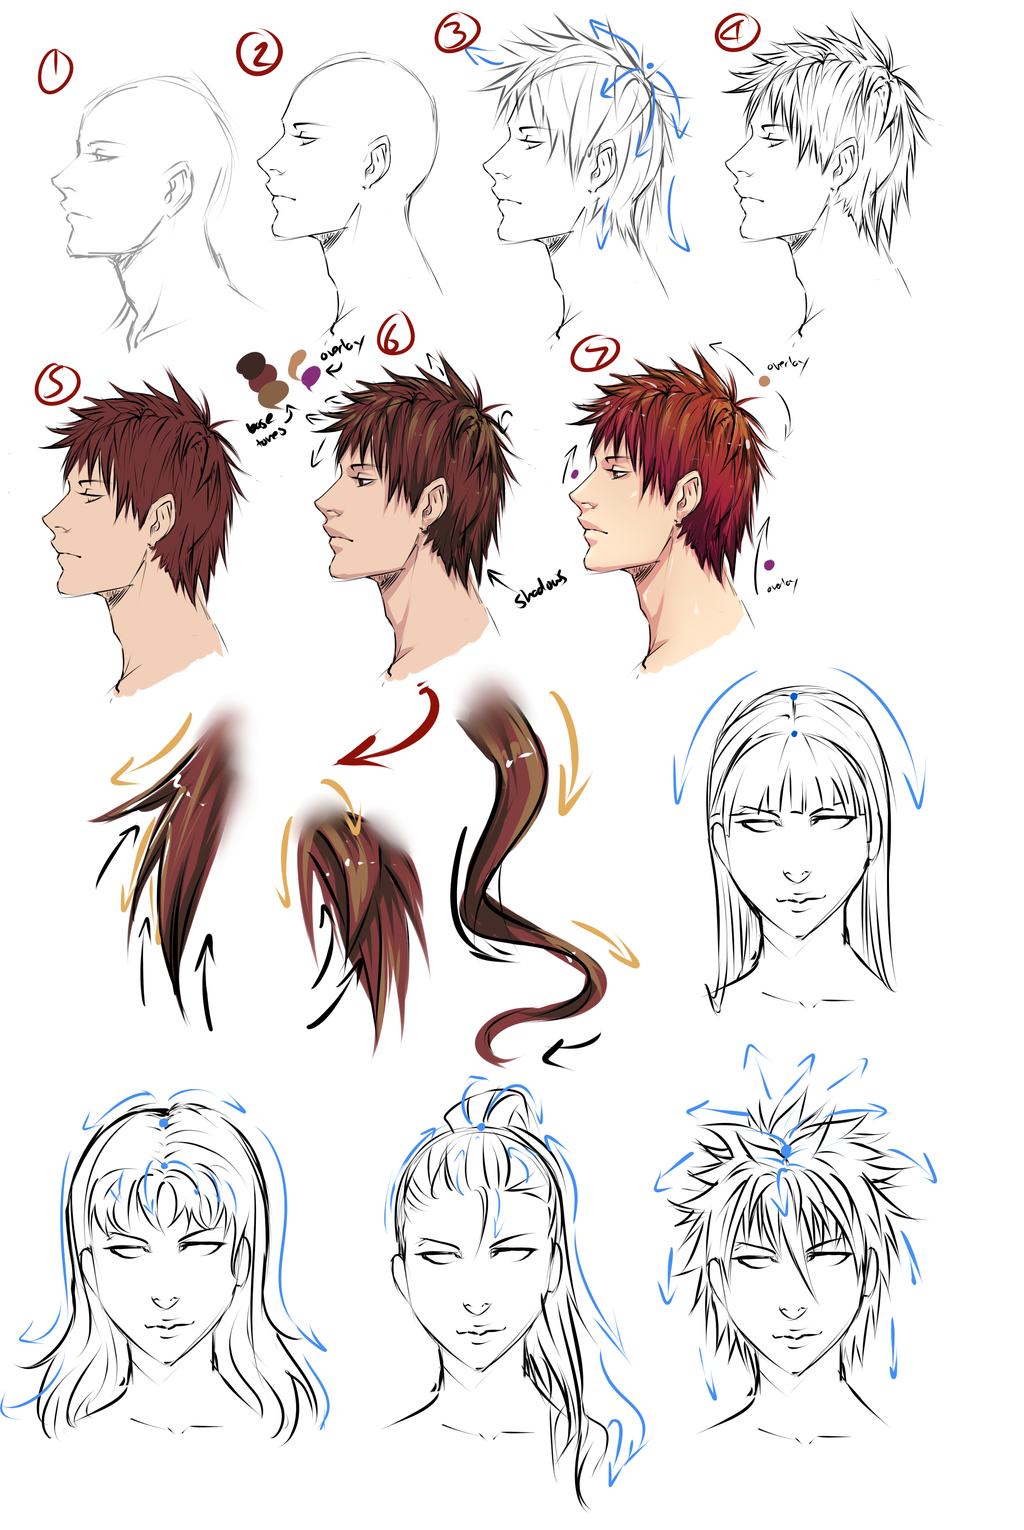 Drawing Anime Hair by moni158.deviantart.com on @deviantART